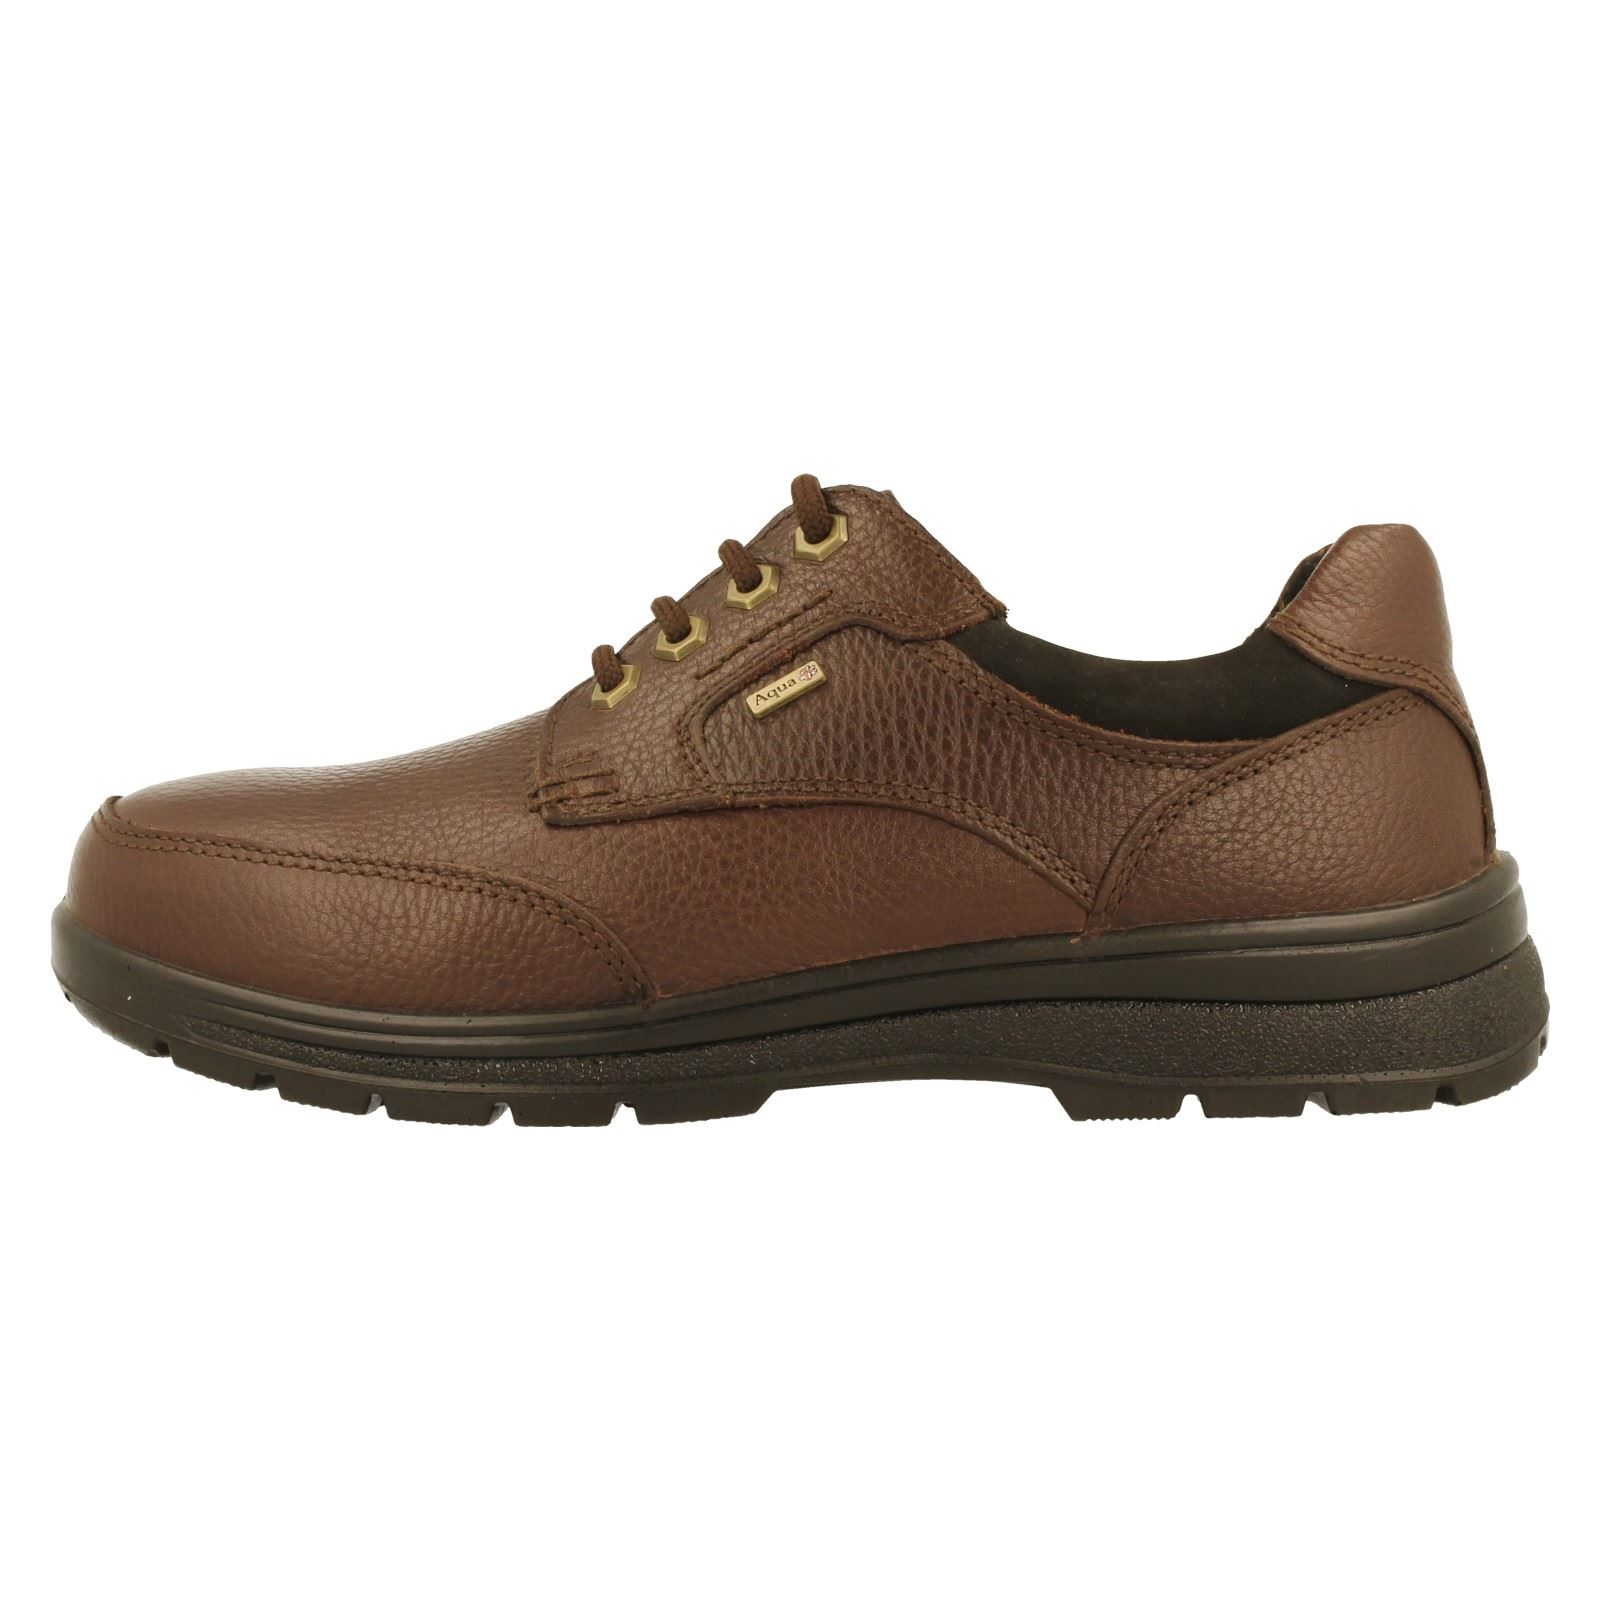 Mens Padders Shoes Water Proof Proof Proof Lace Up G/H Fit Style Terrain-W a6b4b7